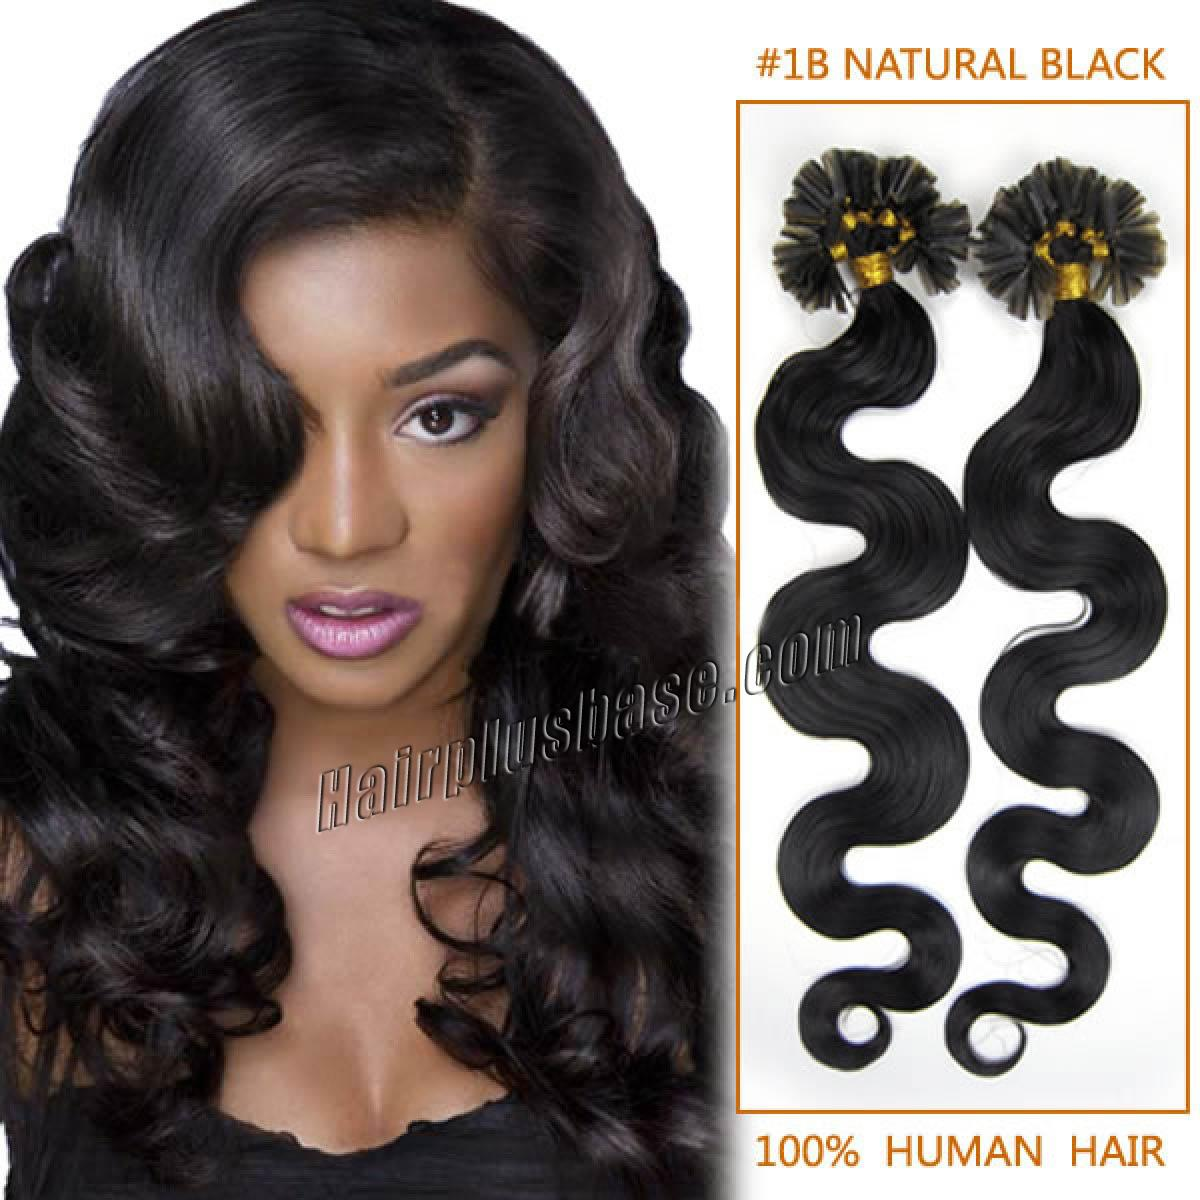 Inch 1b natural black wavy nail tip human hair extensions 100s 20 inch 1b natural black wavy nail tip human hair extensions 100s pmusecretfo Choice Image